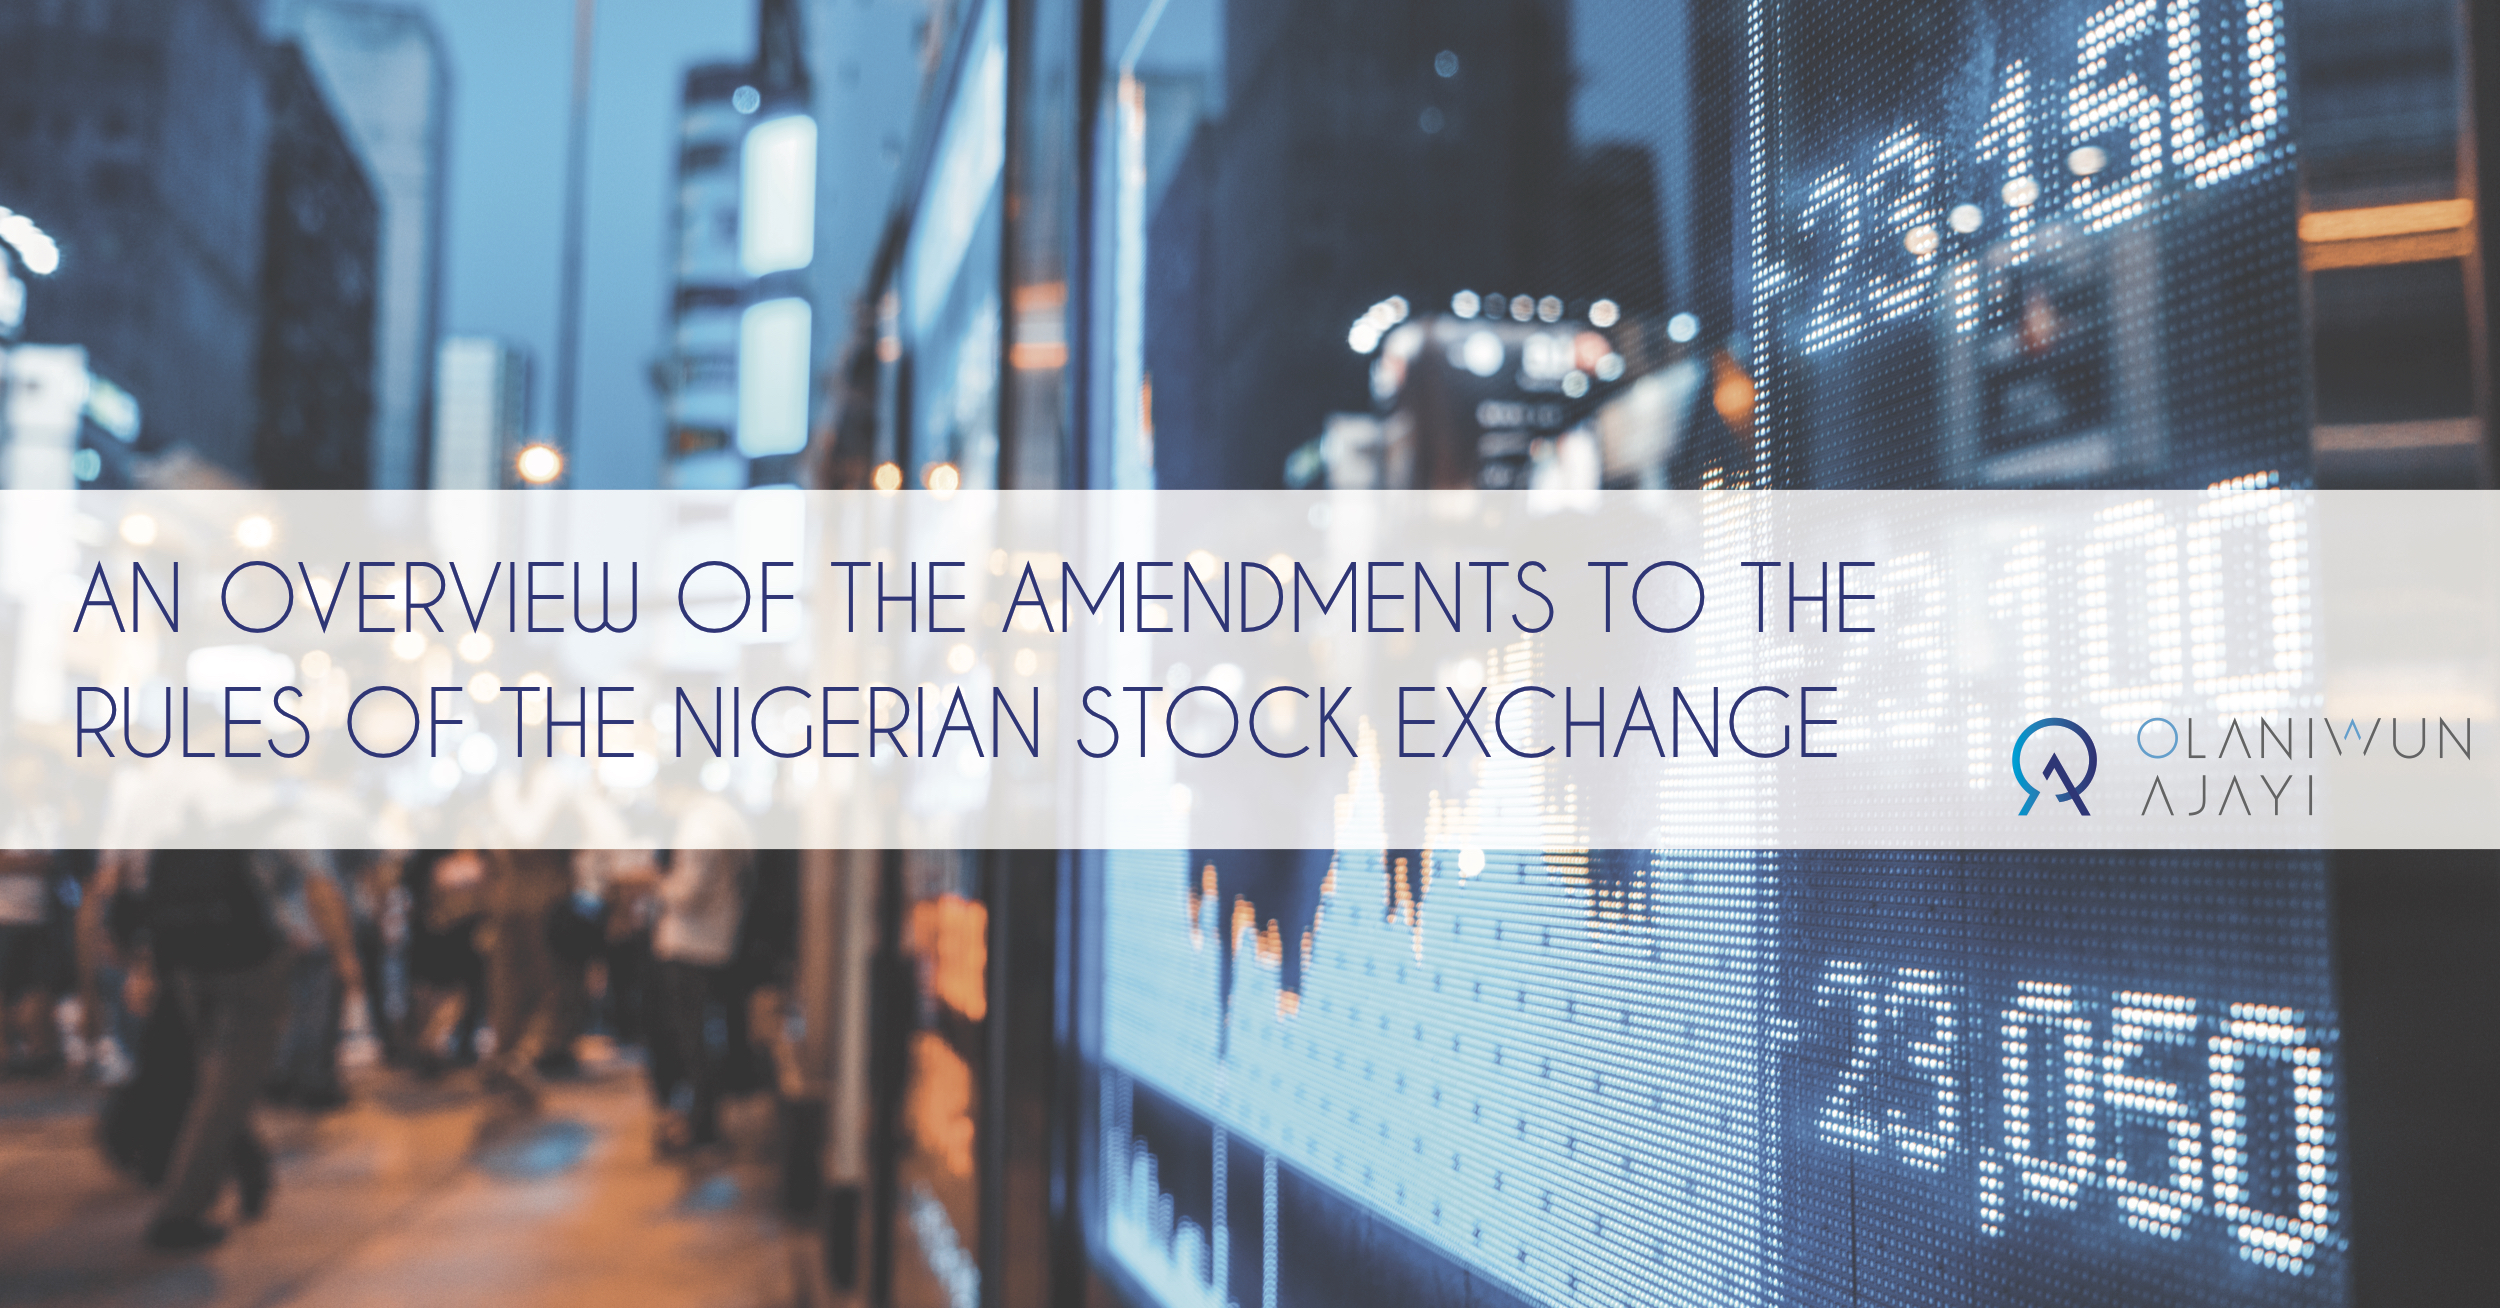 New Rules Of The Nigerian Stock Exchange The Estero